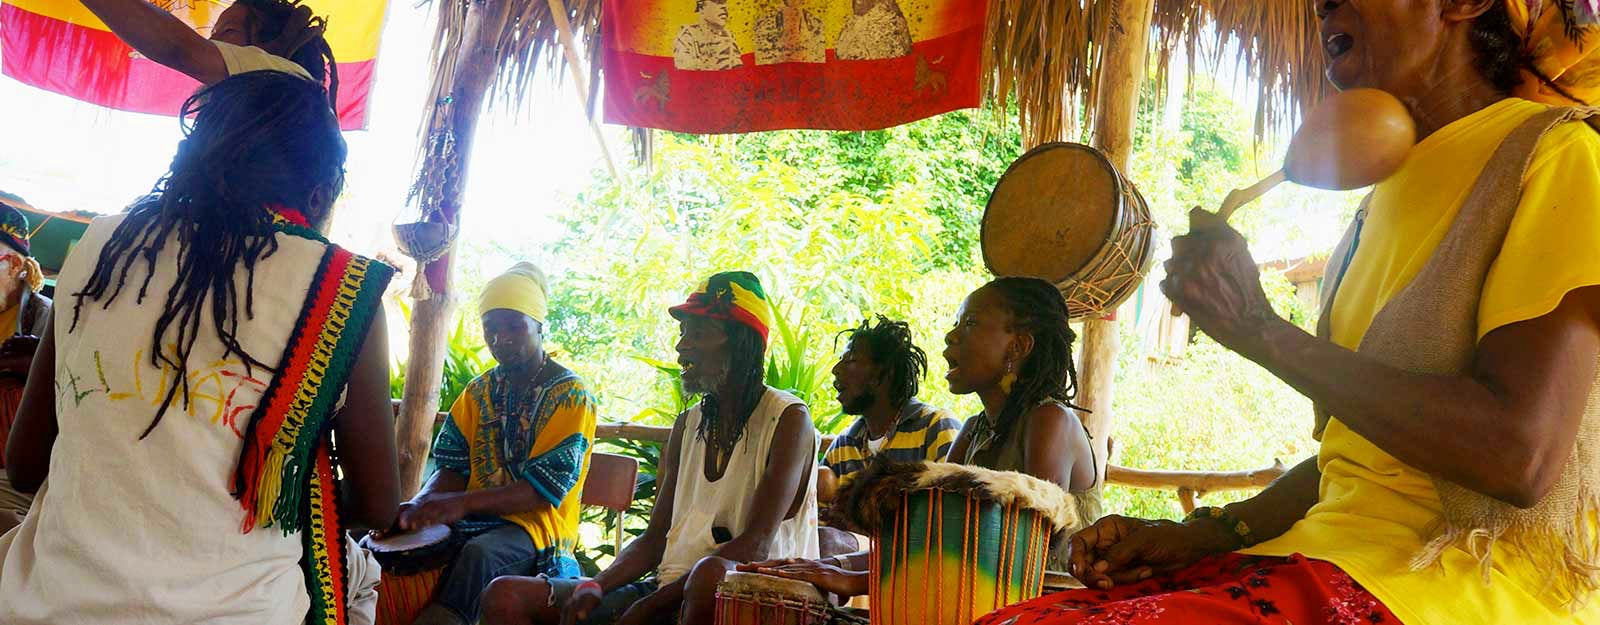 Rastafari Indigenous Village